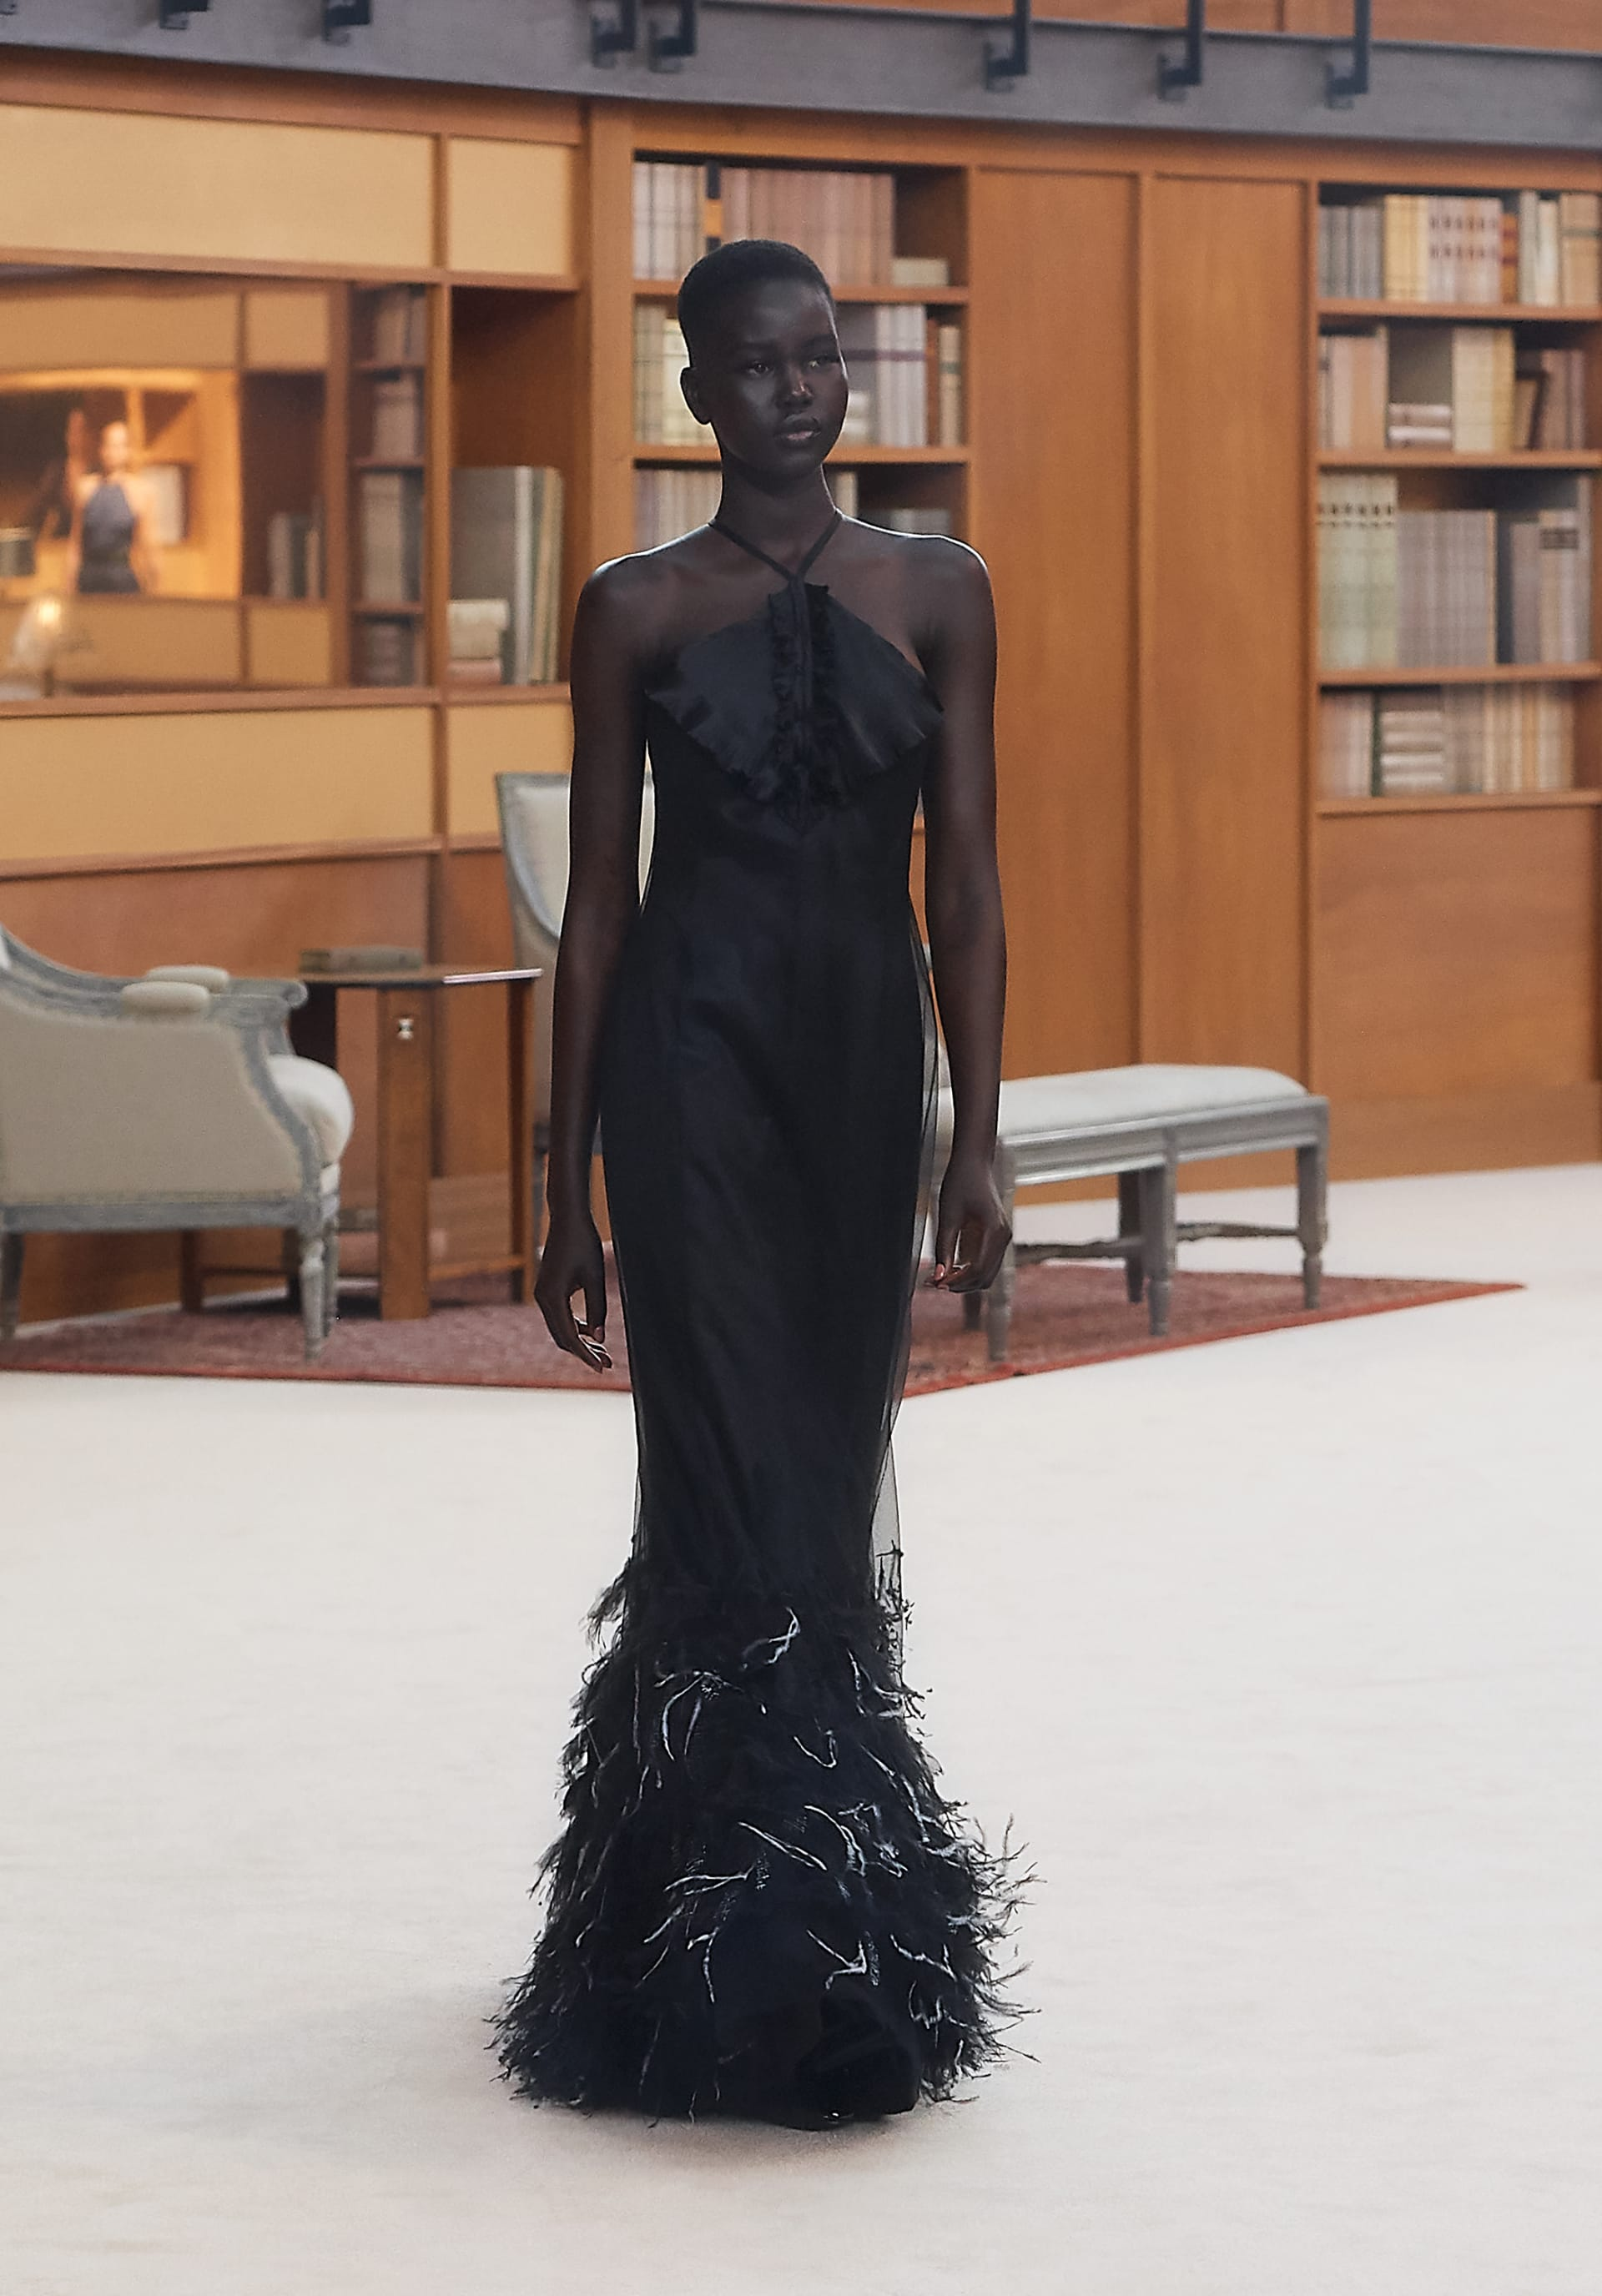 View 1 - Look 63 - Fall-Winter 2019/20 Haute-Couture - see full sized version